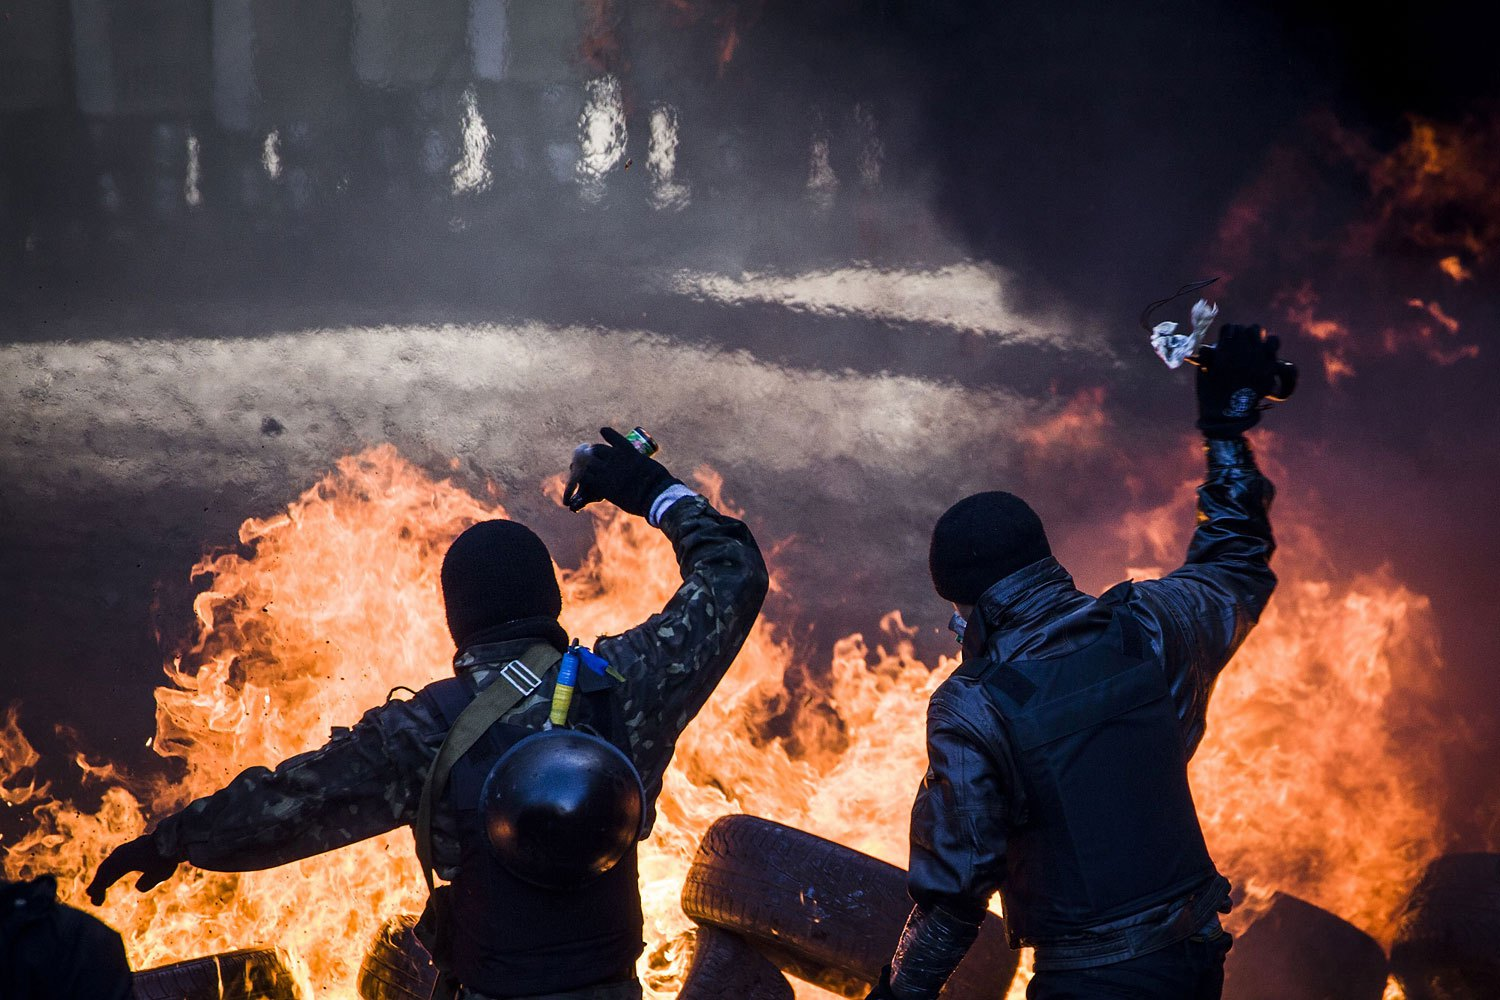 Anti-government demonstrators clash with riot police, Feb. 18, 2014.